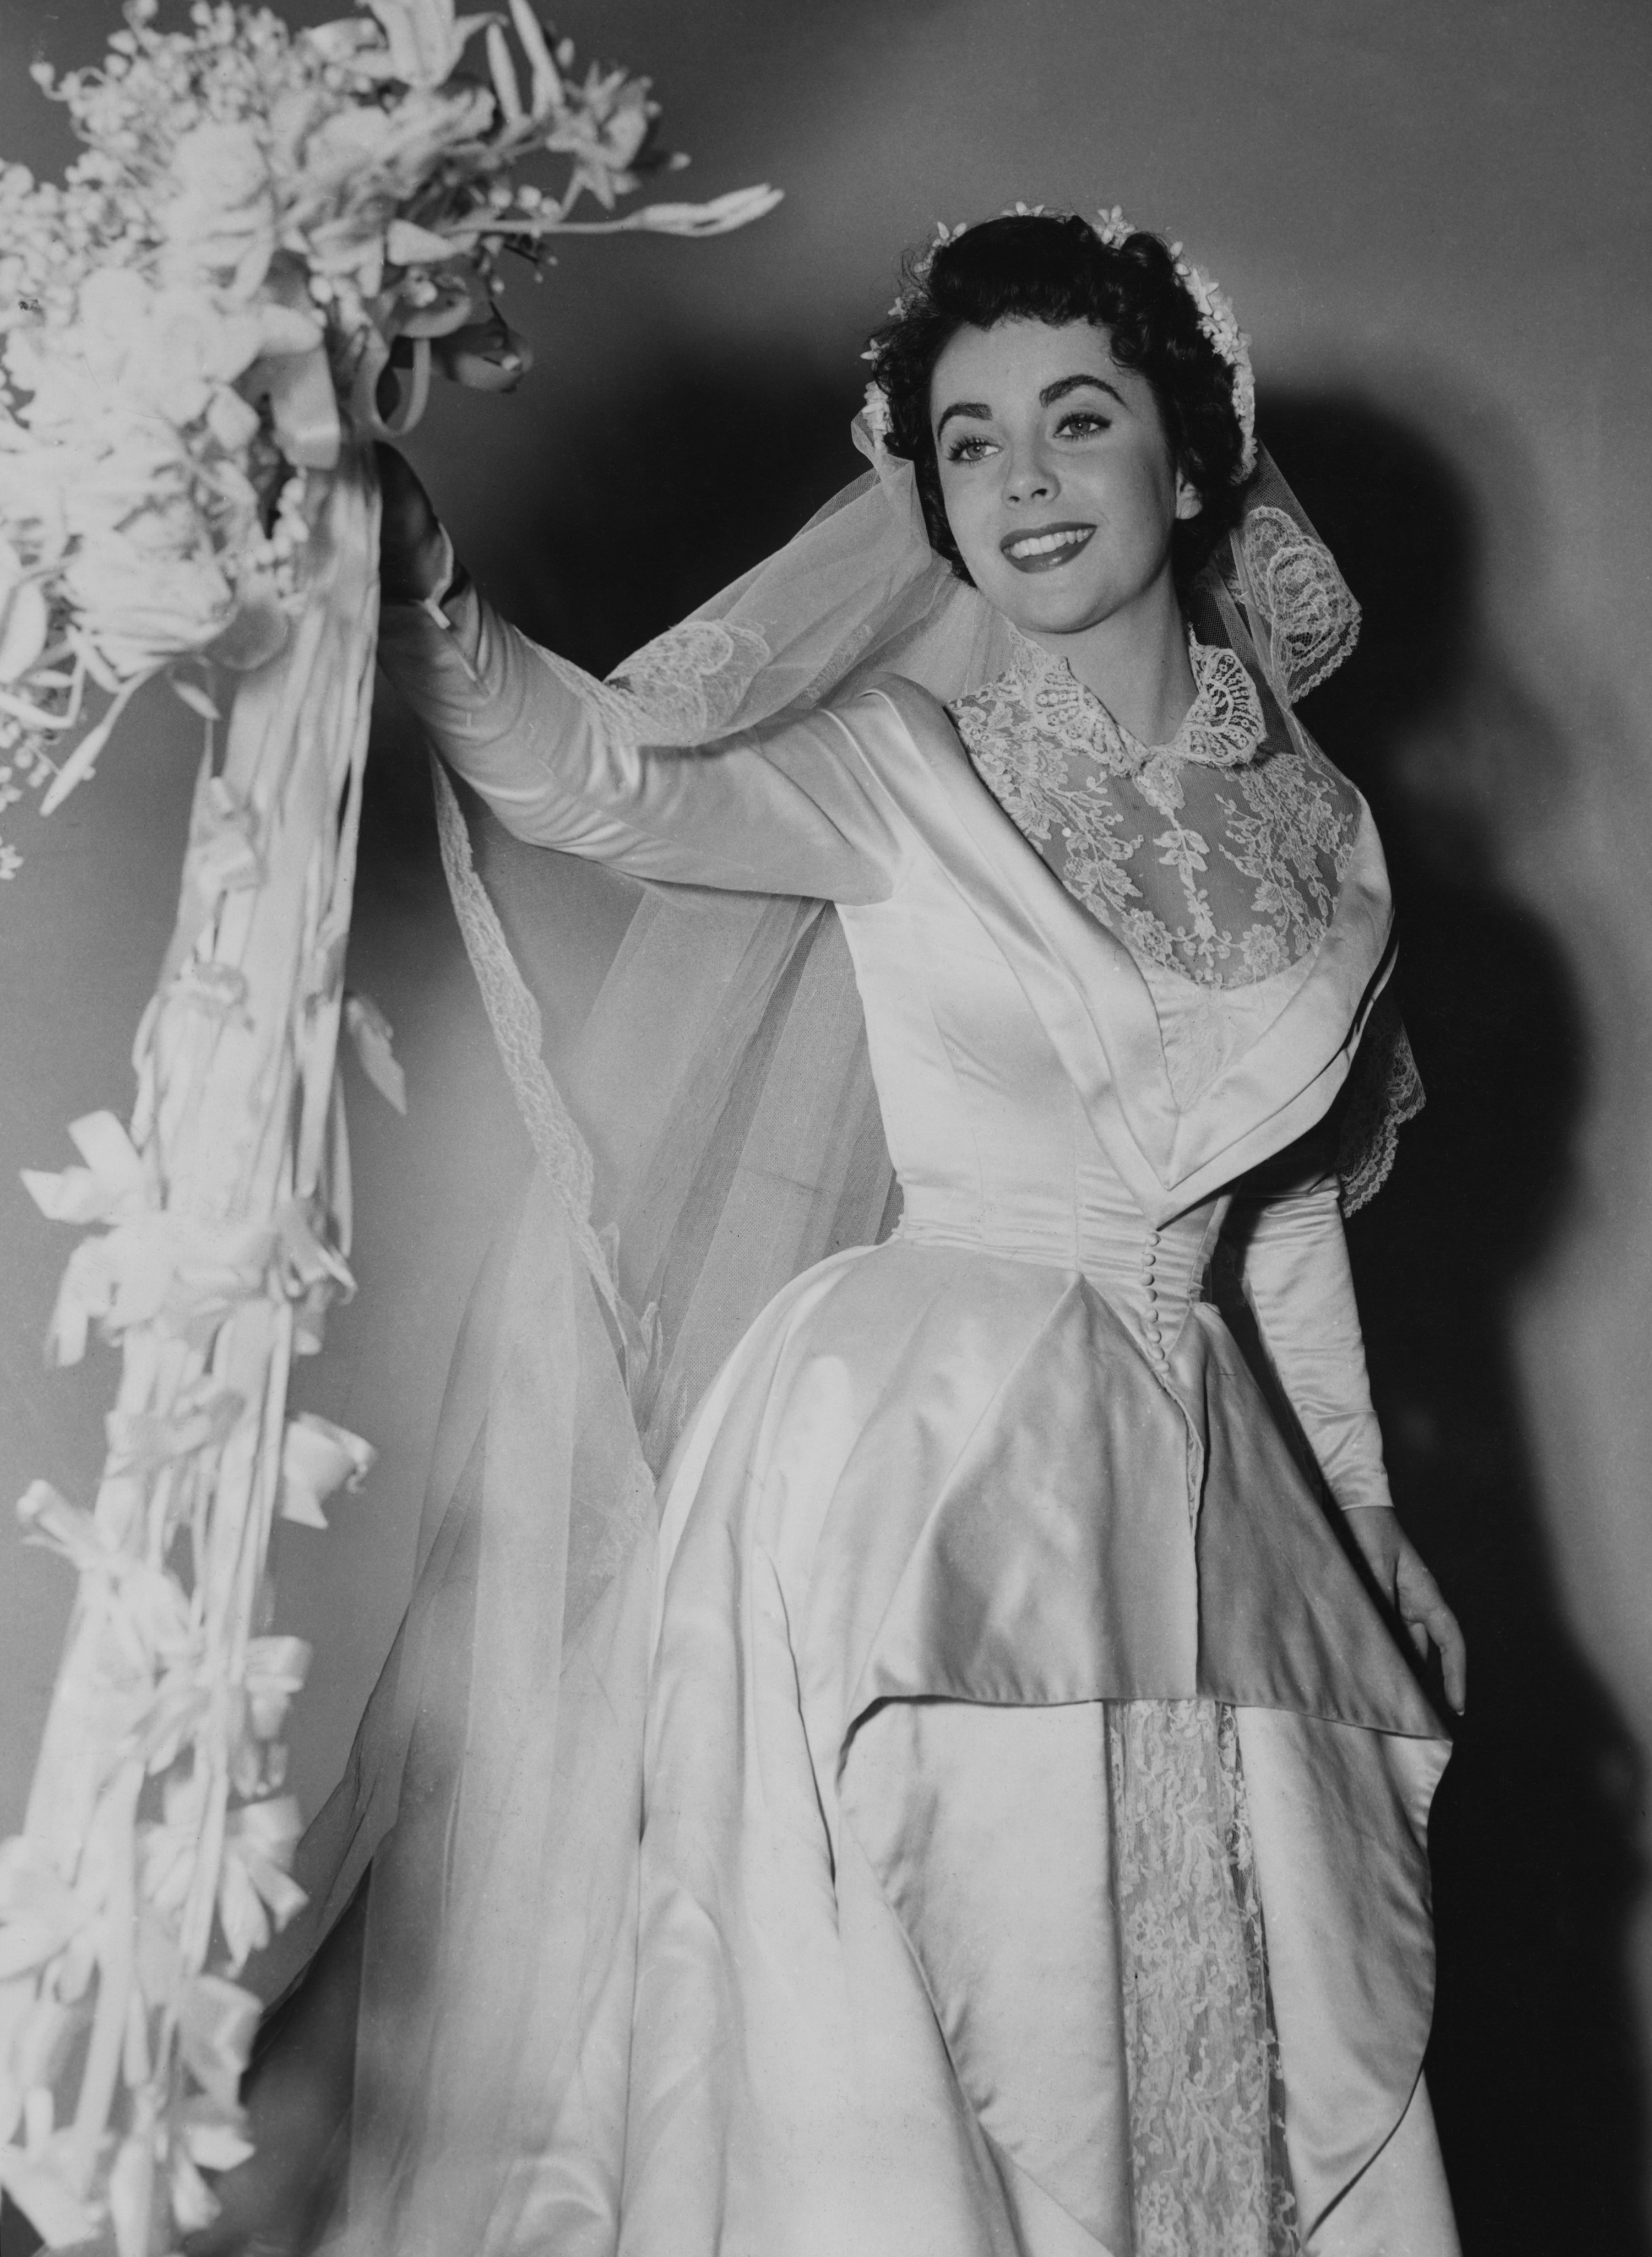 Kay wearing a huge, elaborate dress with a collar